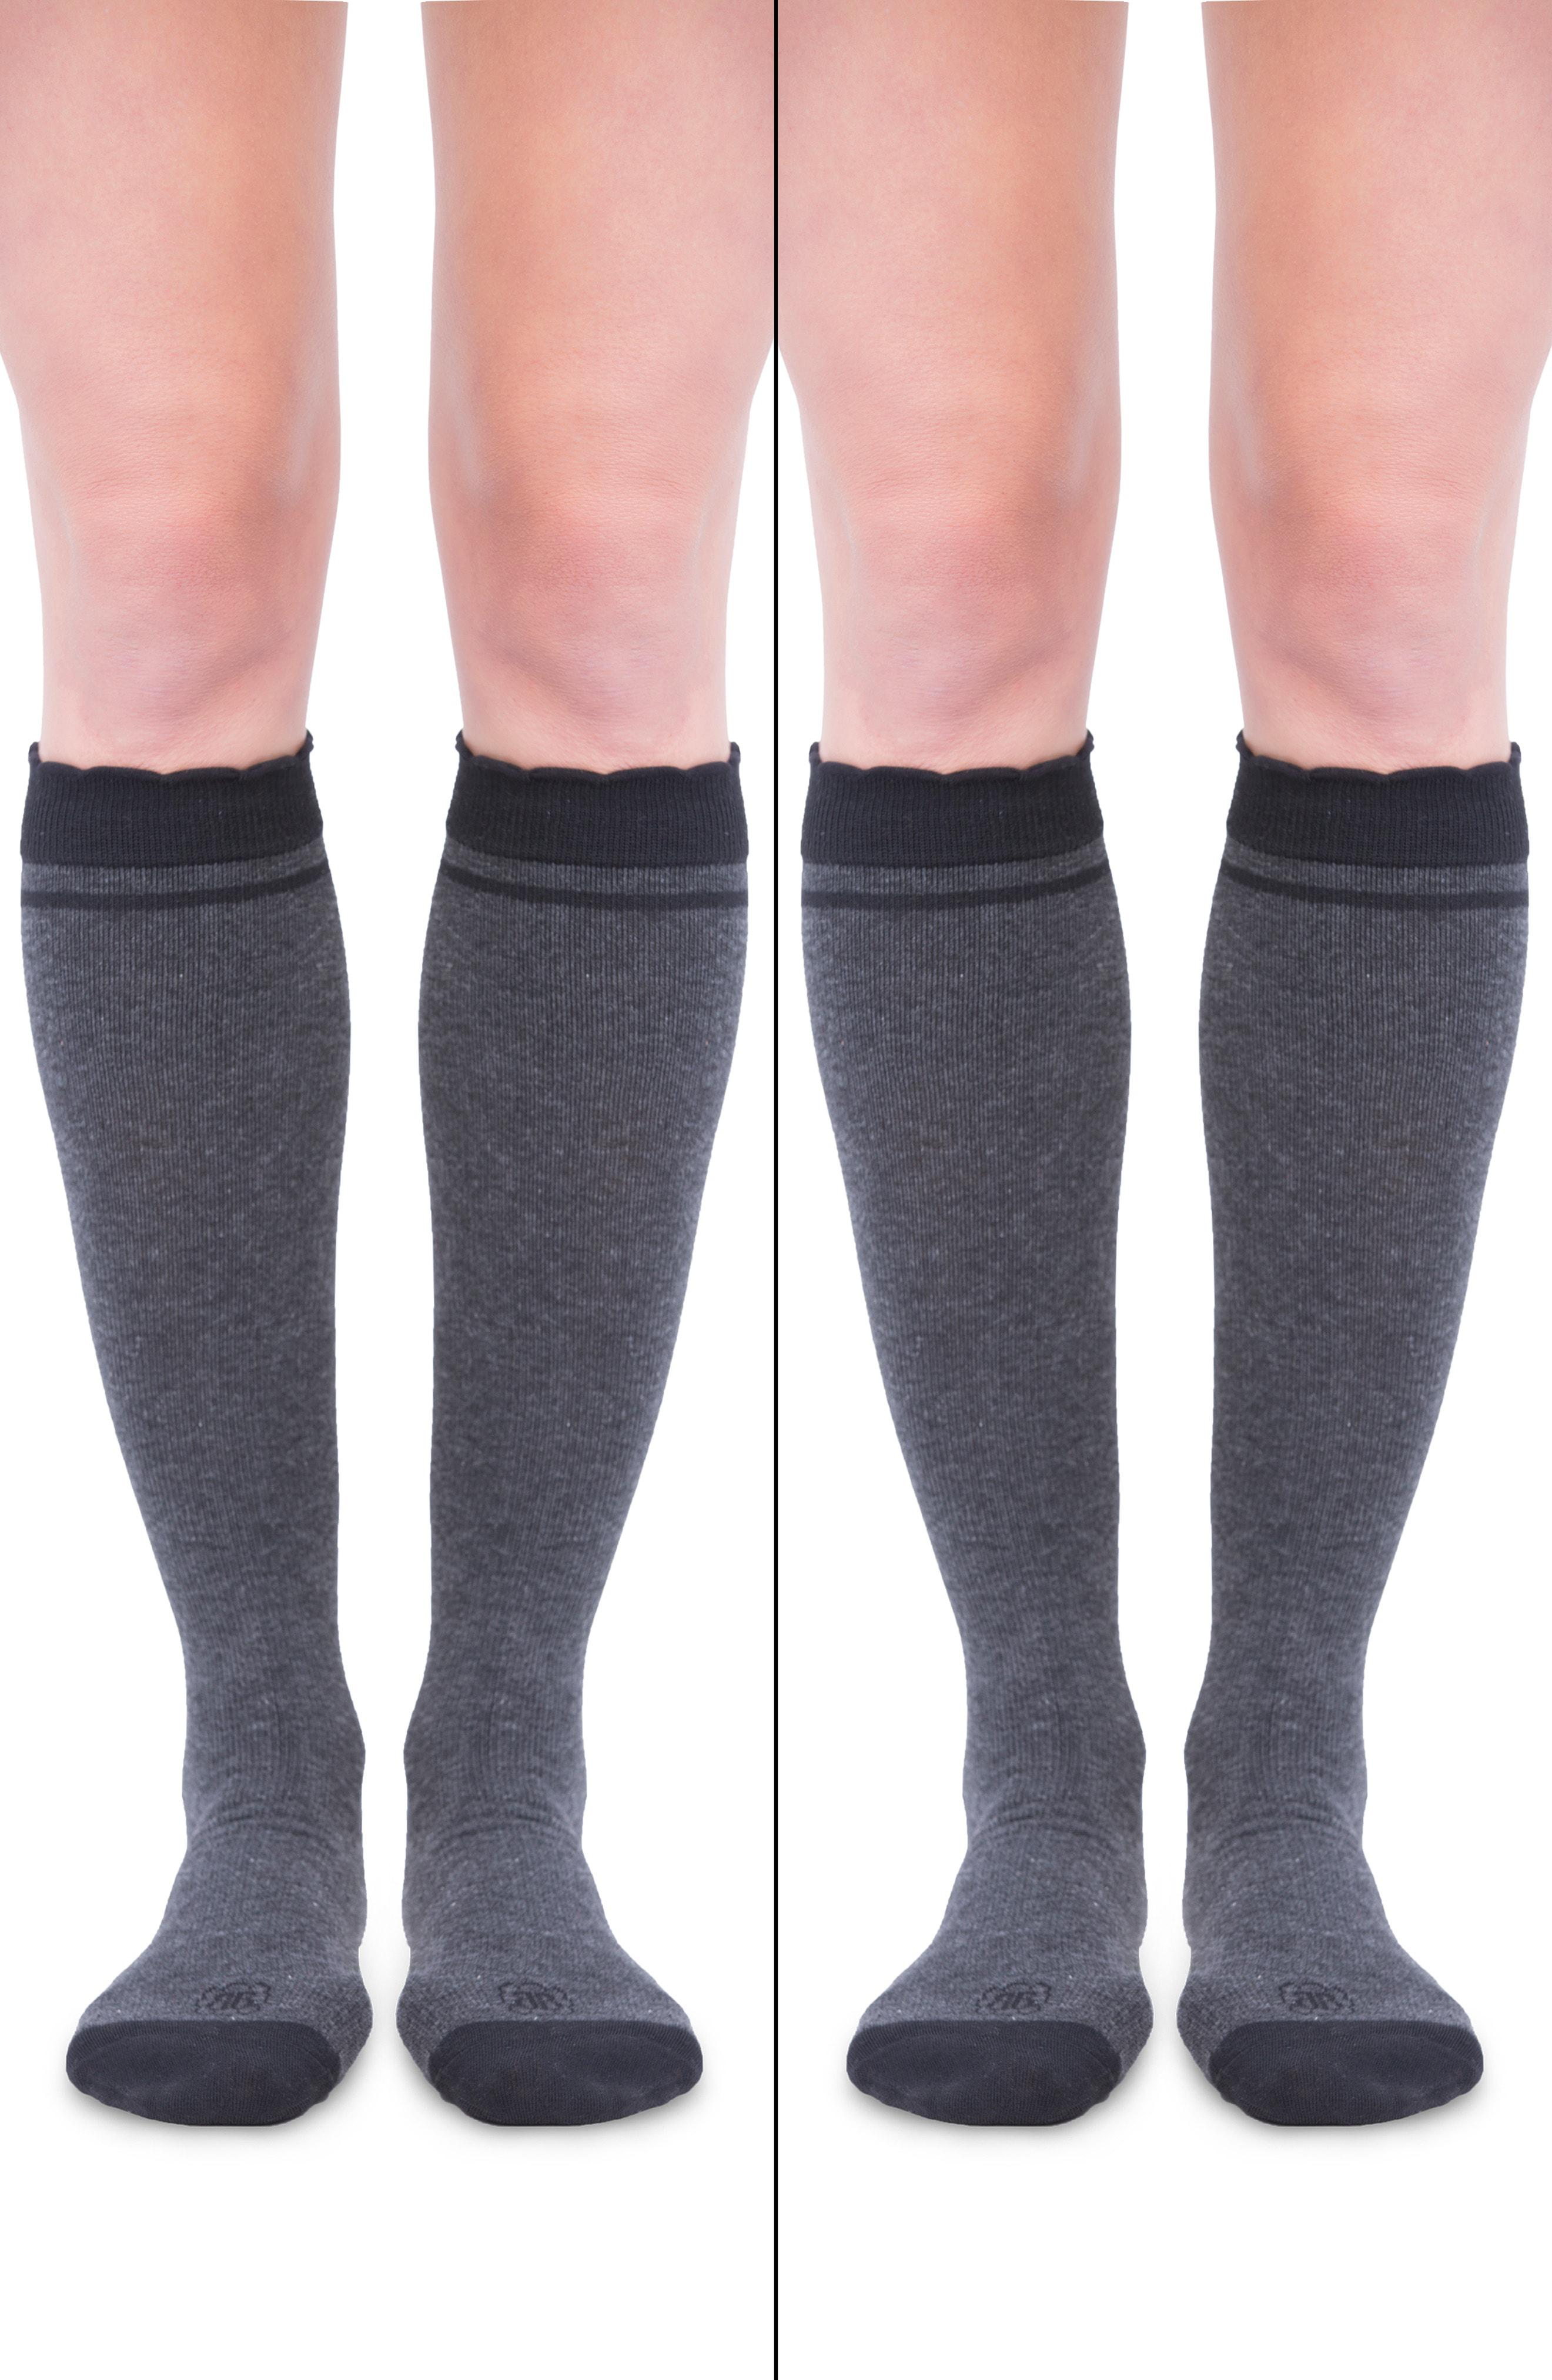 9d33ff3701e Belly Bandit. Women s Gray Belly Bandit 2-pack Compression Socks ...